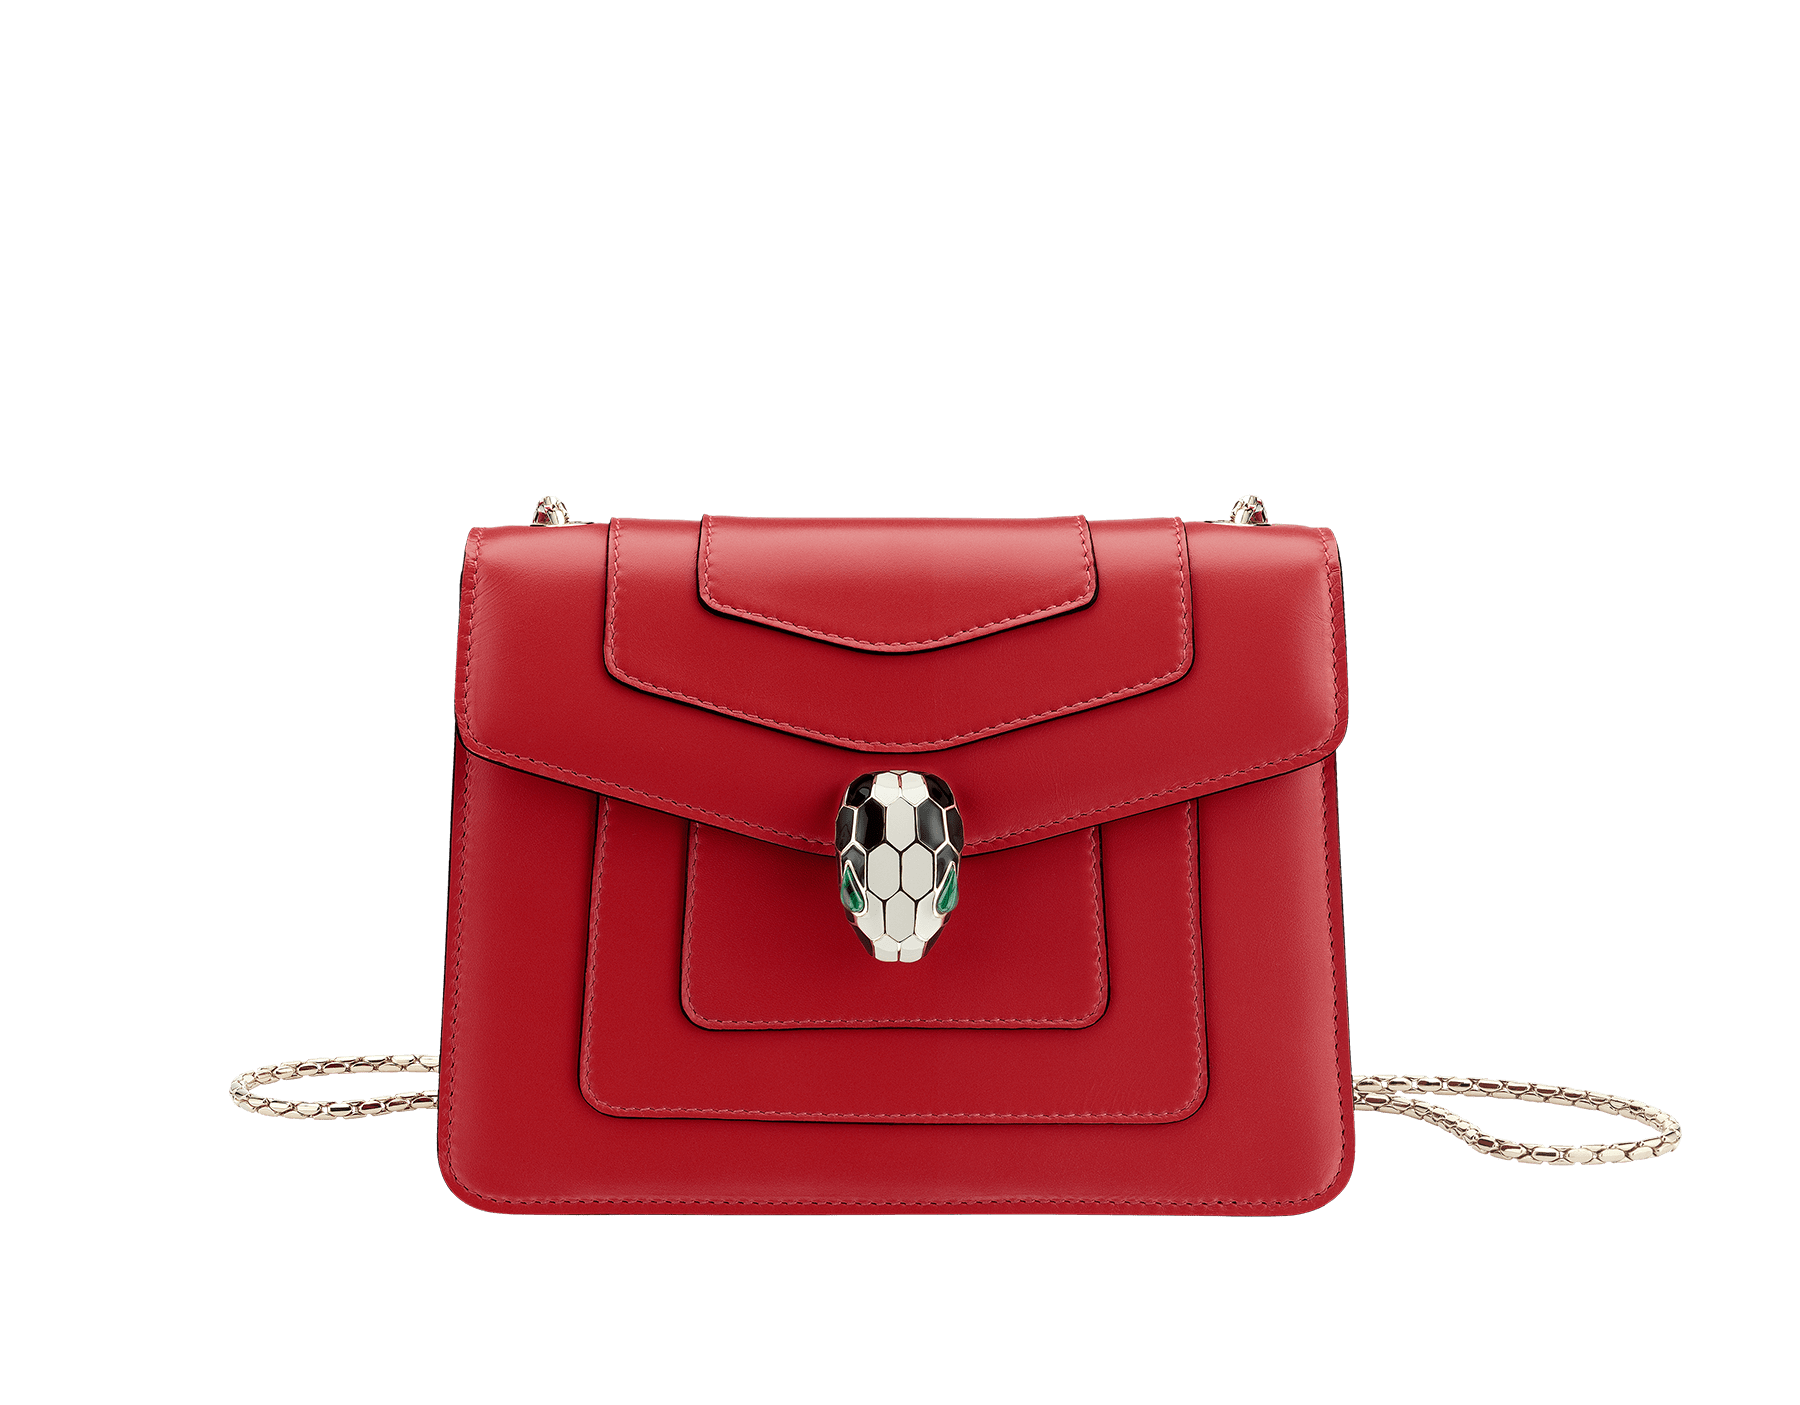 Flap cover bag Serpenti Forever in ruby red calf leather. Brass light gold plated snake head closure in black and white enamel with eyes in green malachite. 280159 image 1